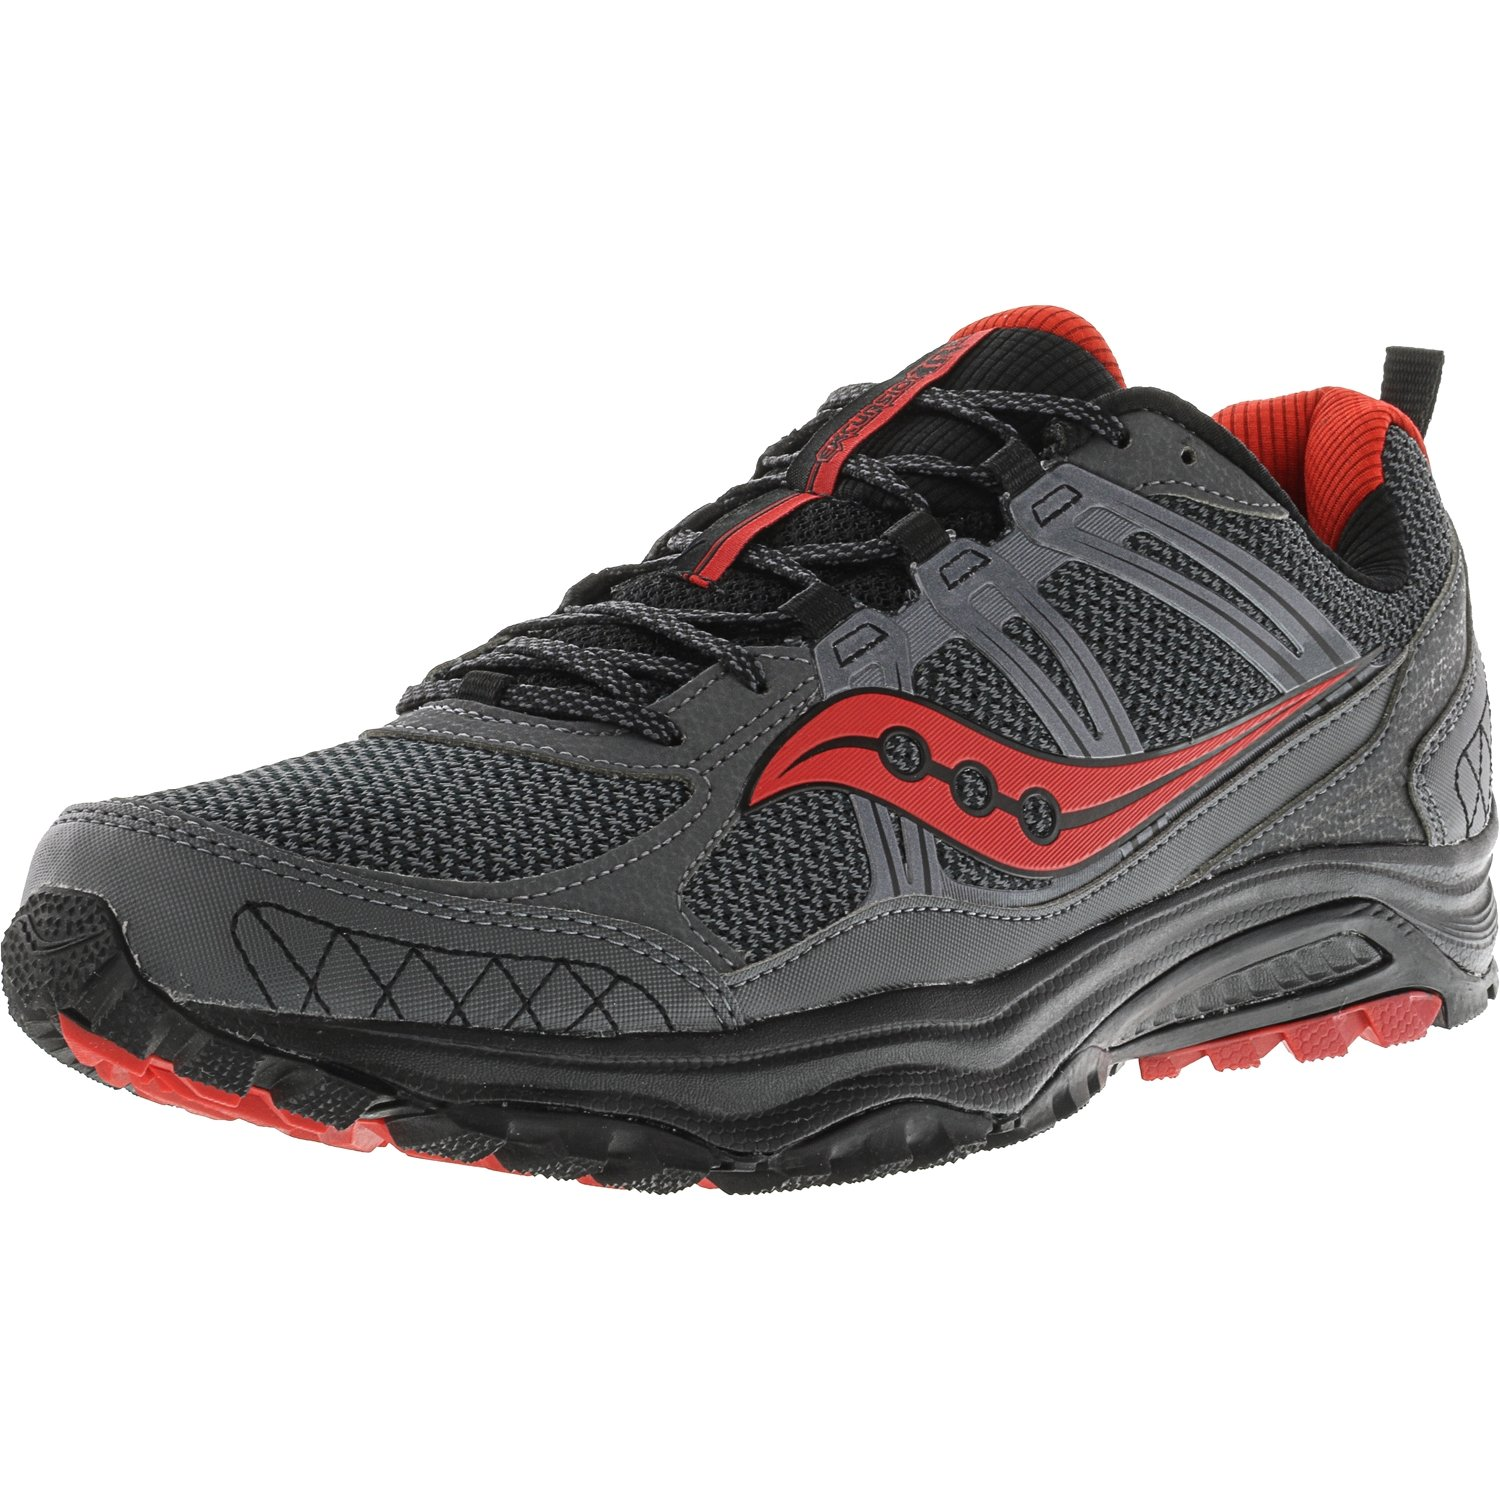 Saucony Grid Excursion TR10 Men's Trail Running Shoes (9, Grey/Black/Red)